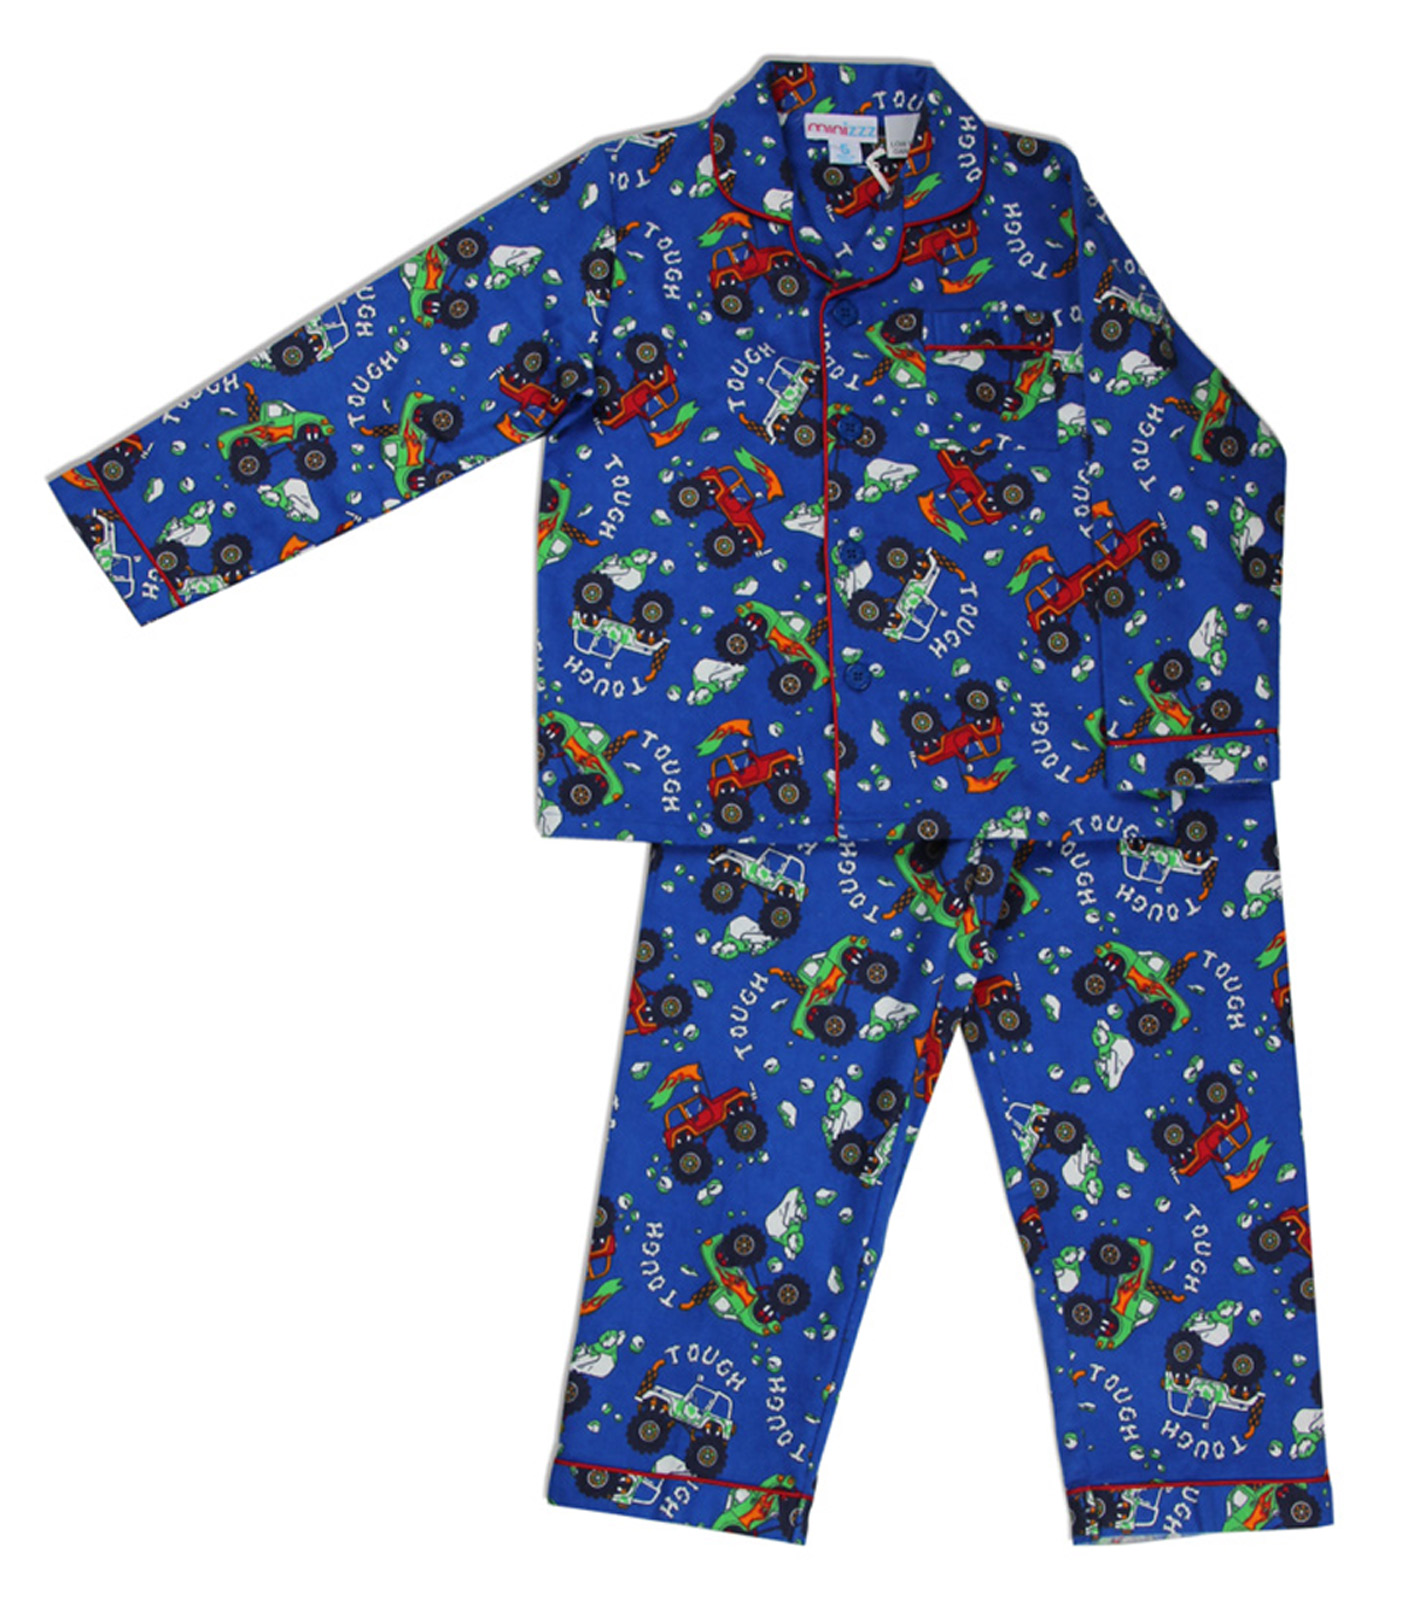 Children's pajamas in fun, custom-designed prints and soft comfortable fabrics. Kid's pajamas to treat all the kids on your shopping list to cozy snuggly pjs. JavaScript seems to be disabled in your browser.